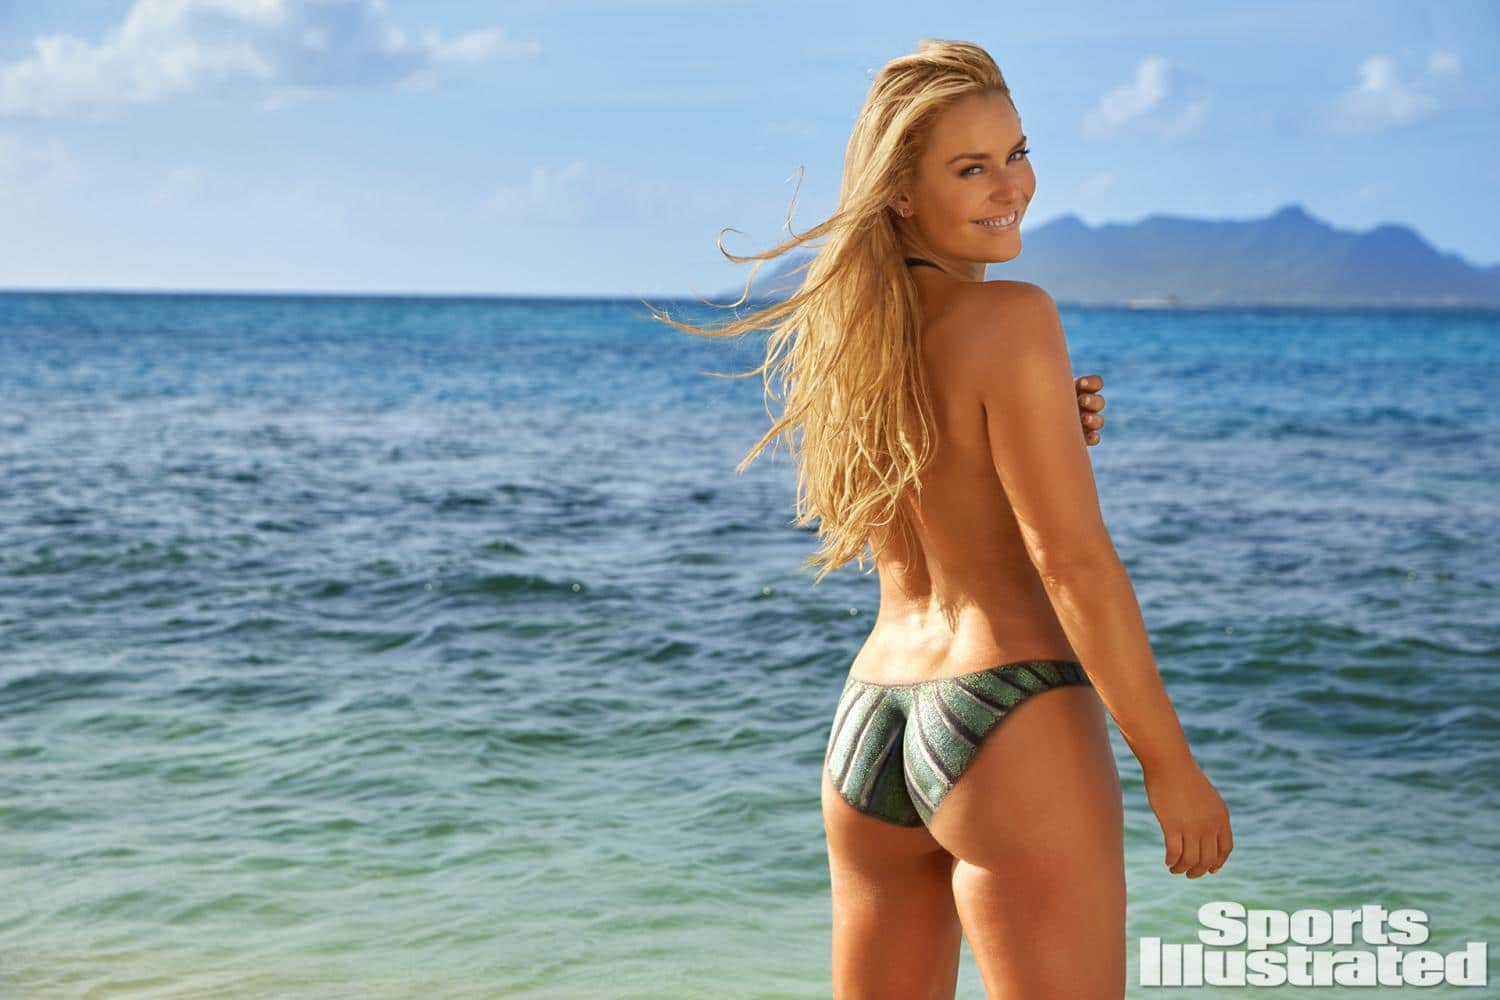 Tiger woods and lindsey vonn naked photos